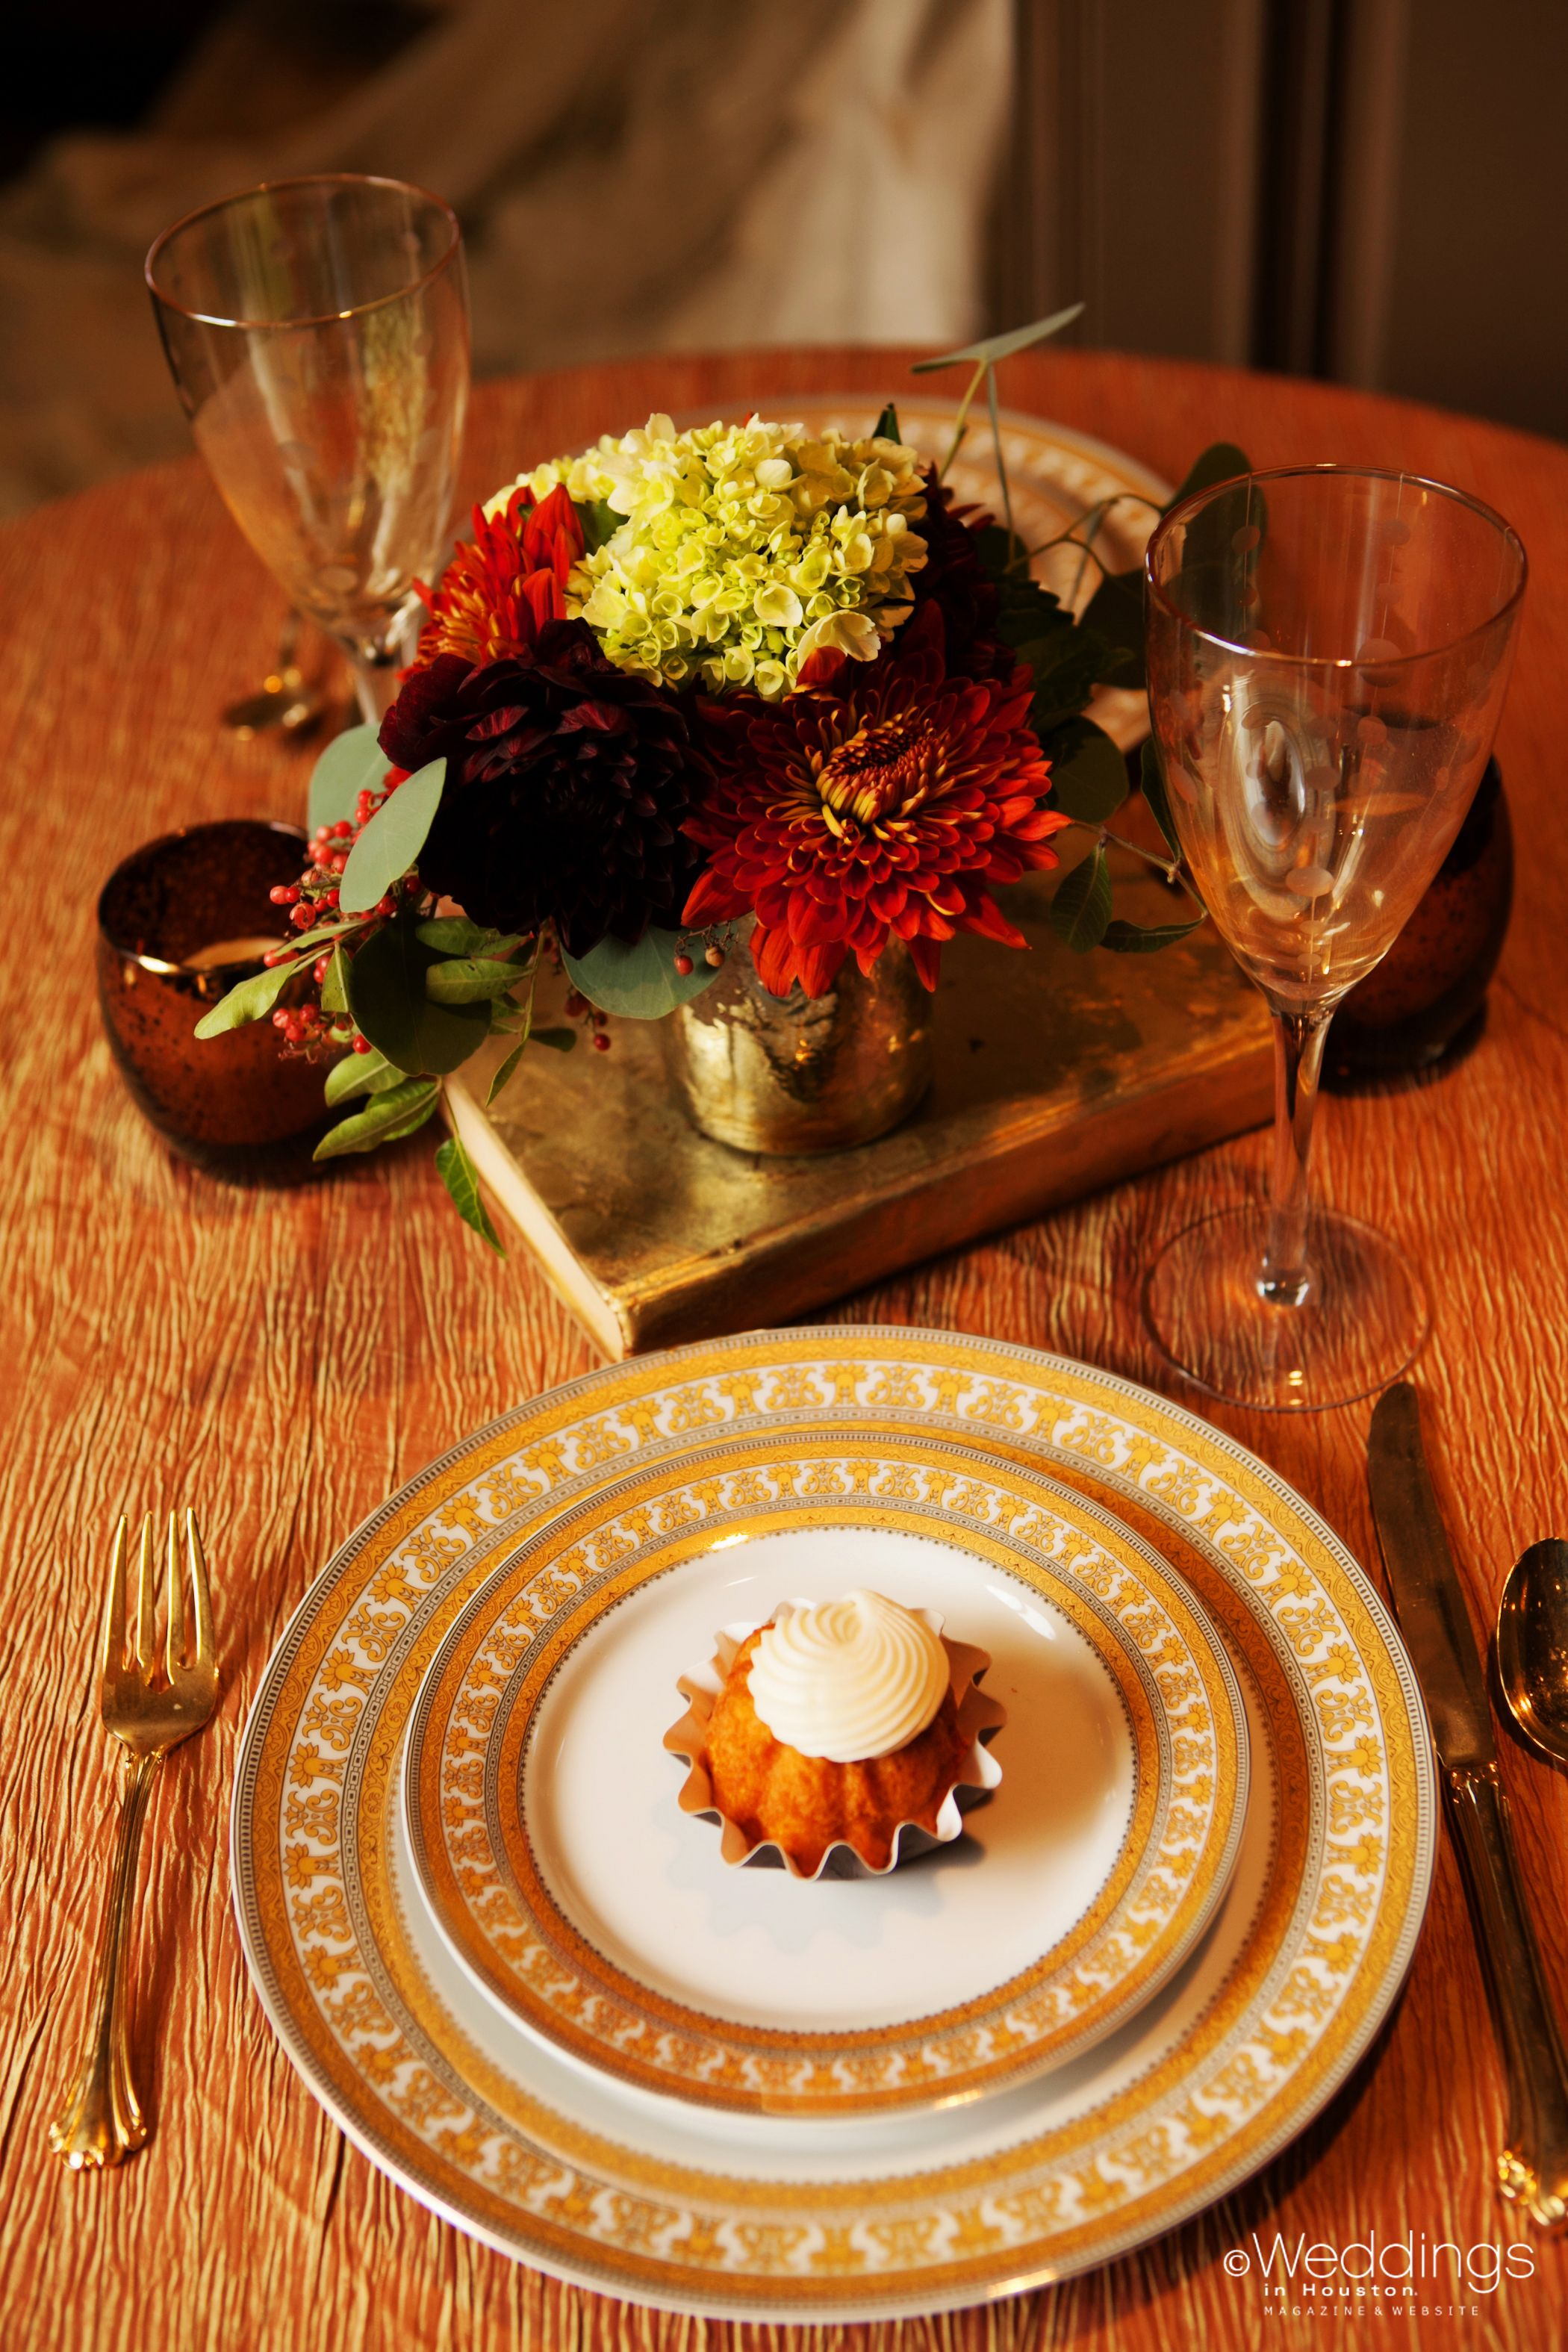 Fall holiday inspired tablescapes and bundt cake dessert